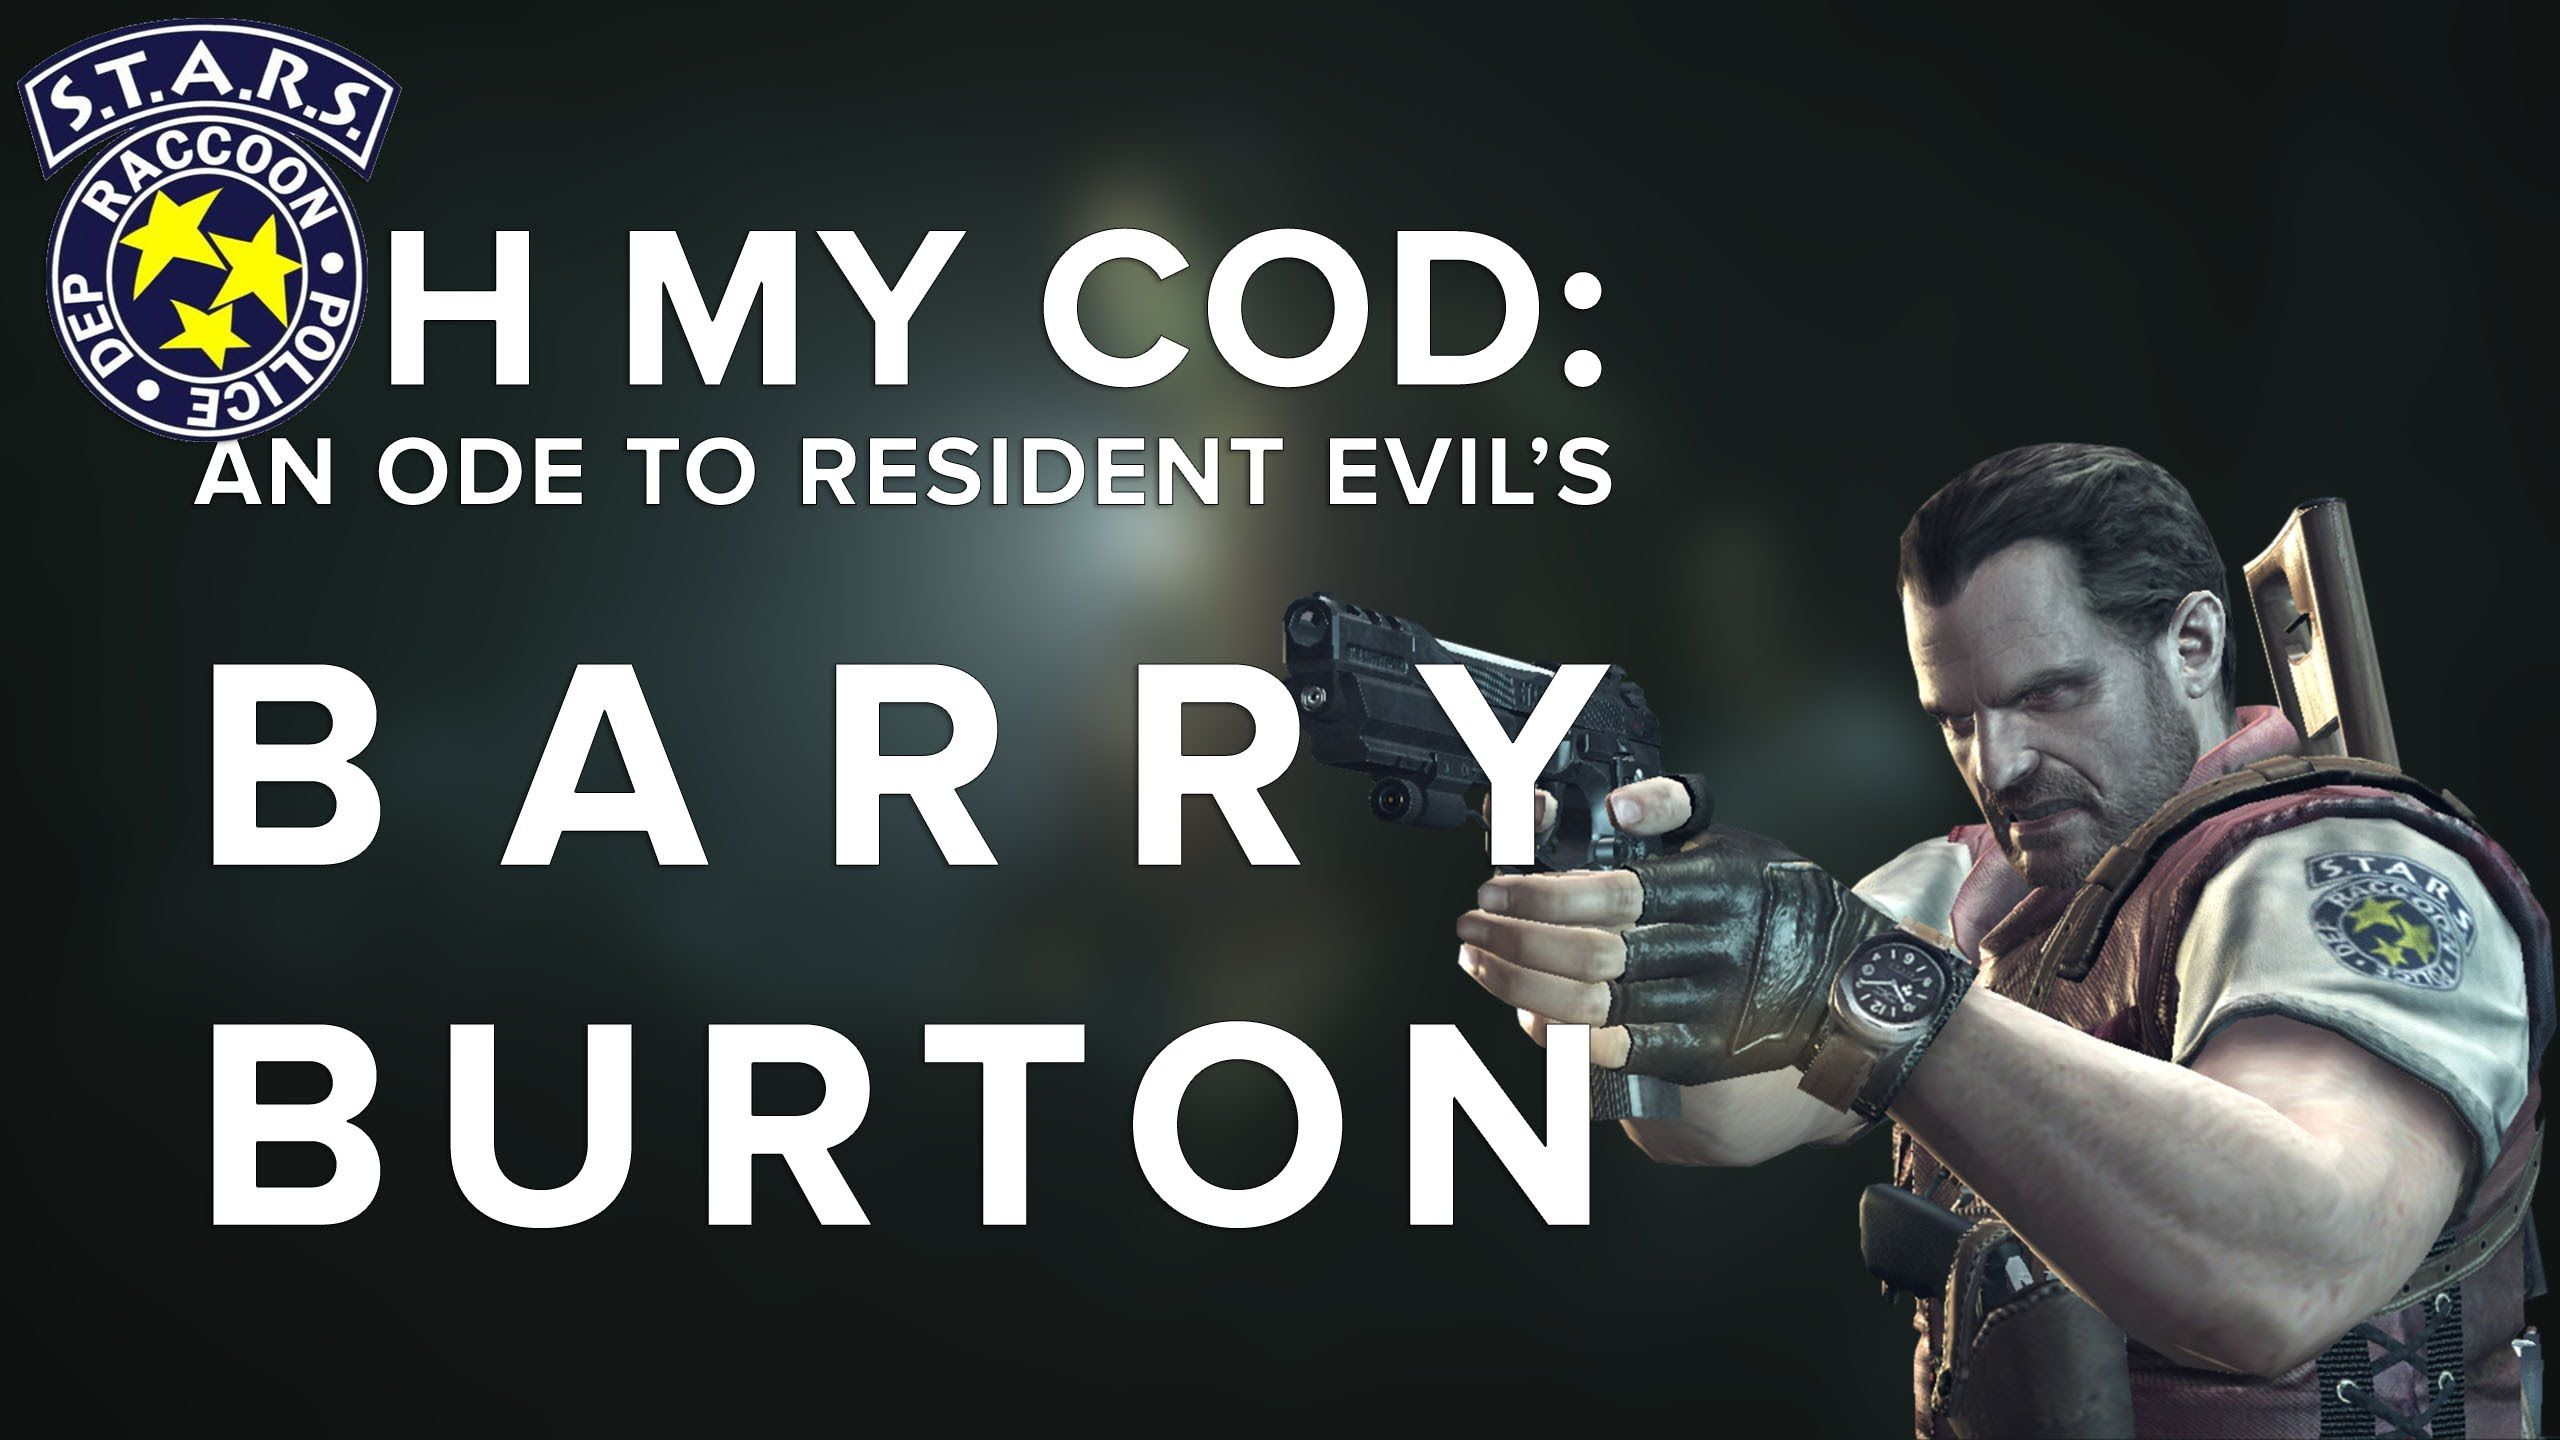 Oh my Cod An Ode to Resident Evil's Barry Burton (With